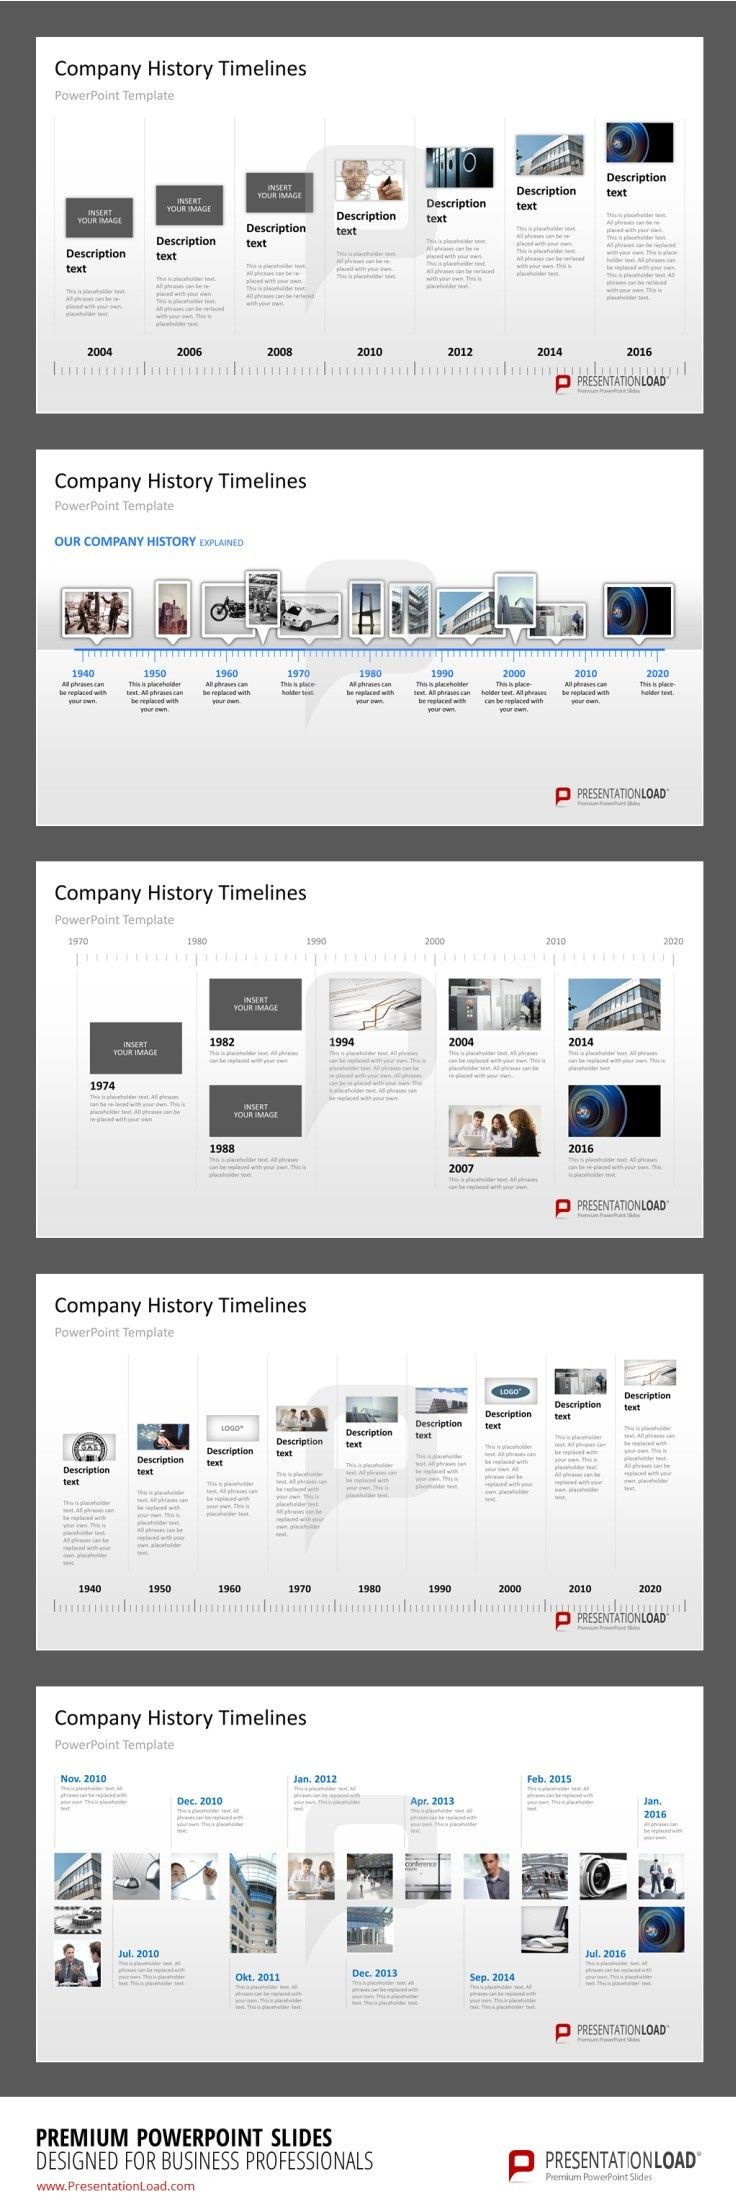 Company History Milestones In A Timeline PowerPoint Template - Project timeline powerpoint template